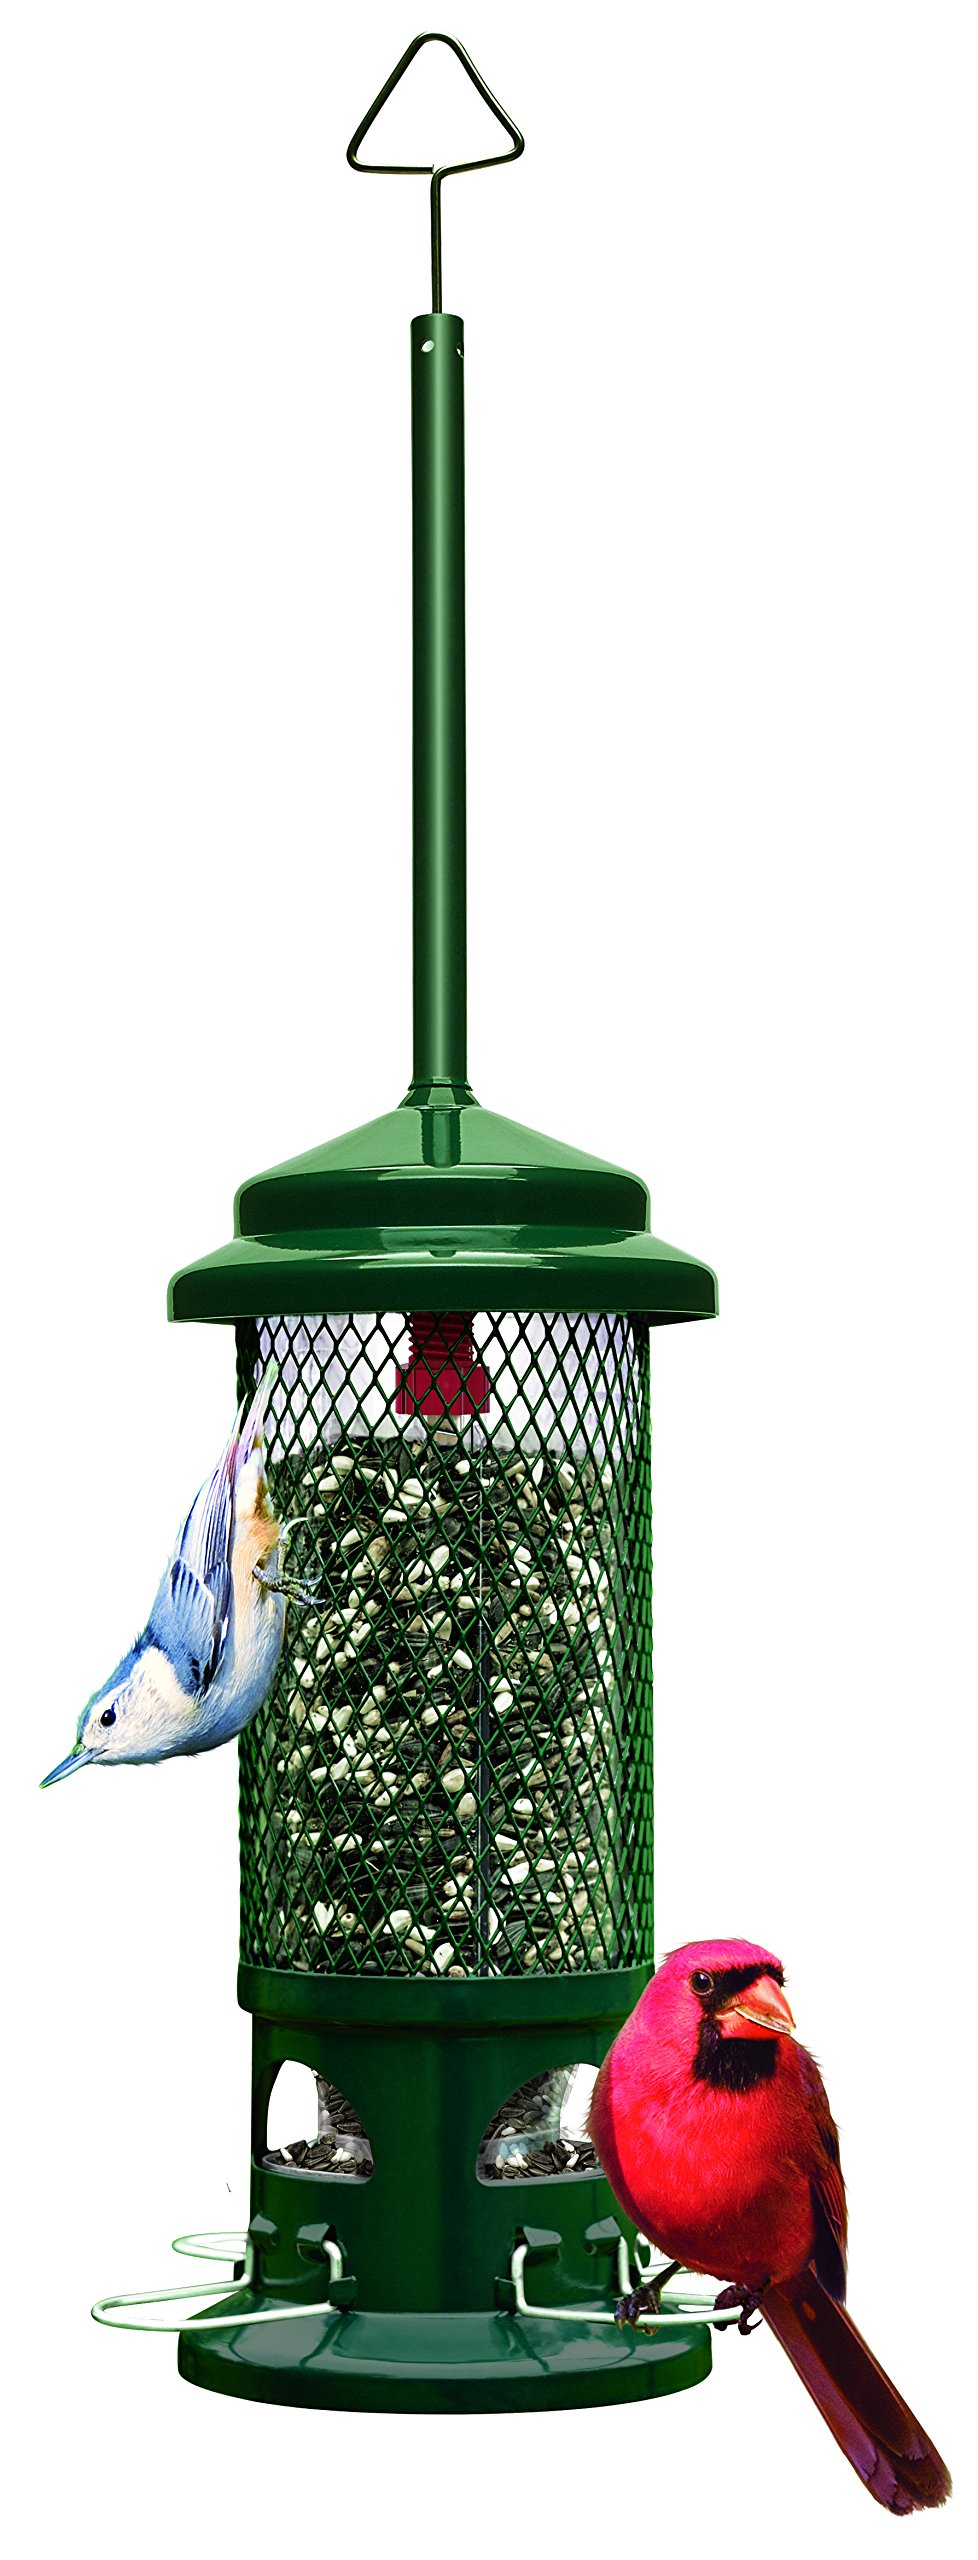 Squirrel Buster Standard 5''x5''x21.5'' (w/hanger) Wild Bird Feeder with 4 Metal Perches, 1.3lb Seed Capacity